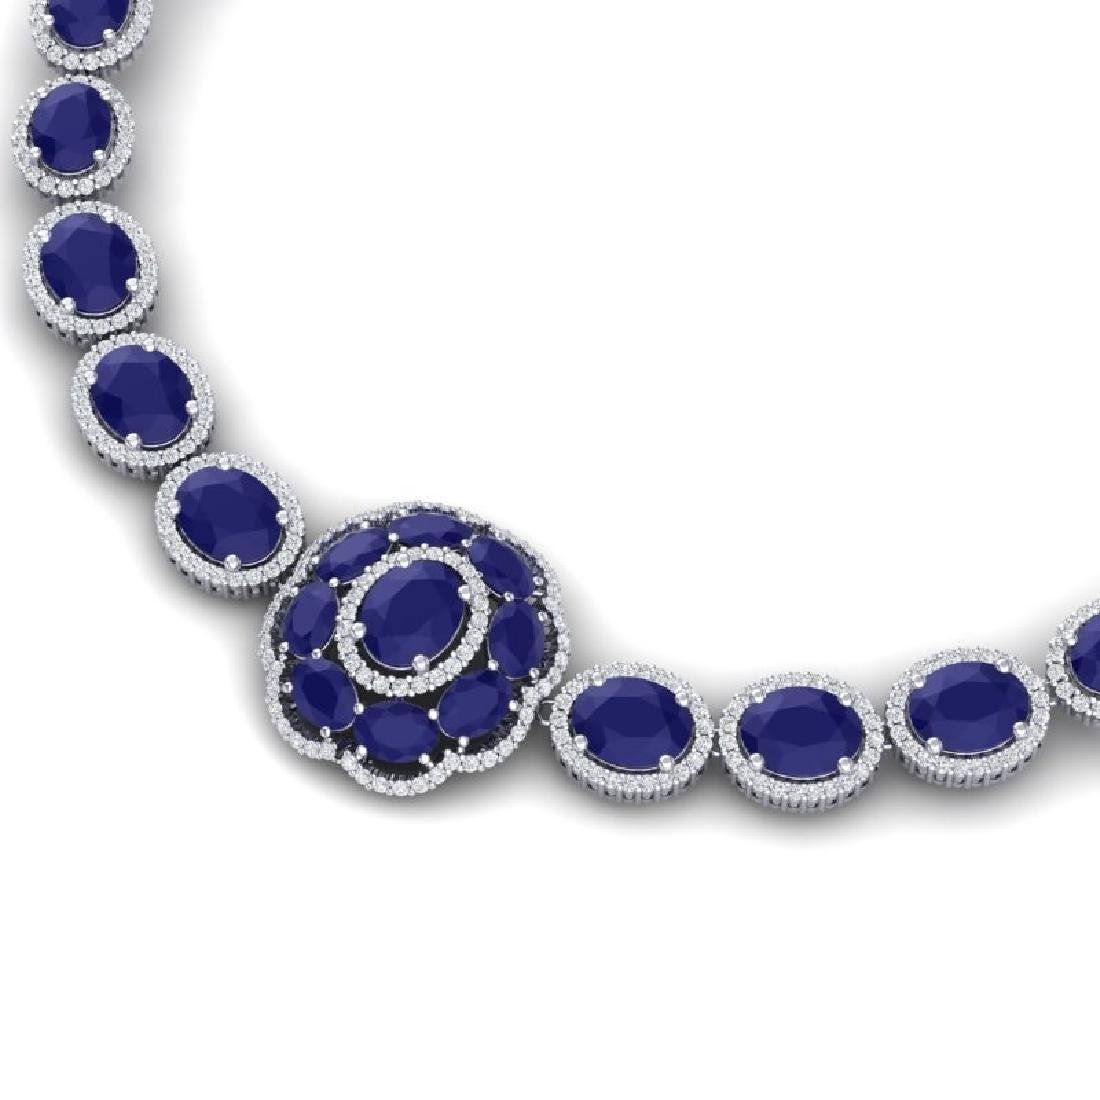 58.33 CTW Royalty Sapphire & VS Diamond Necklace 18K